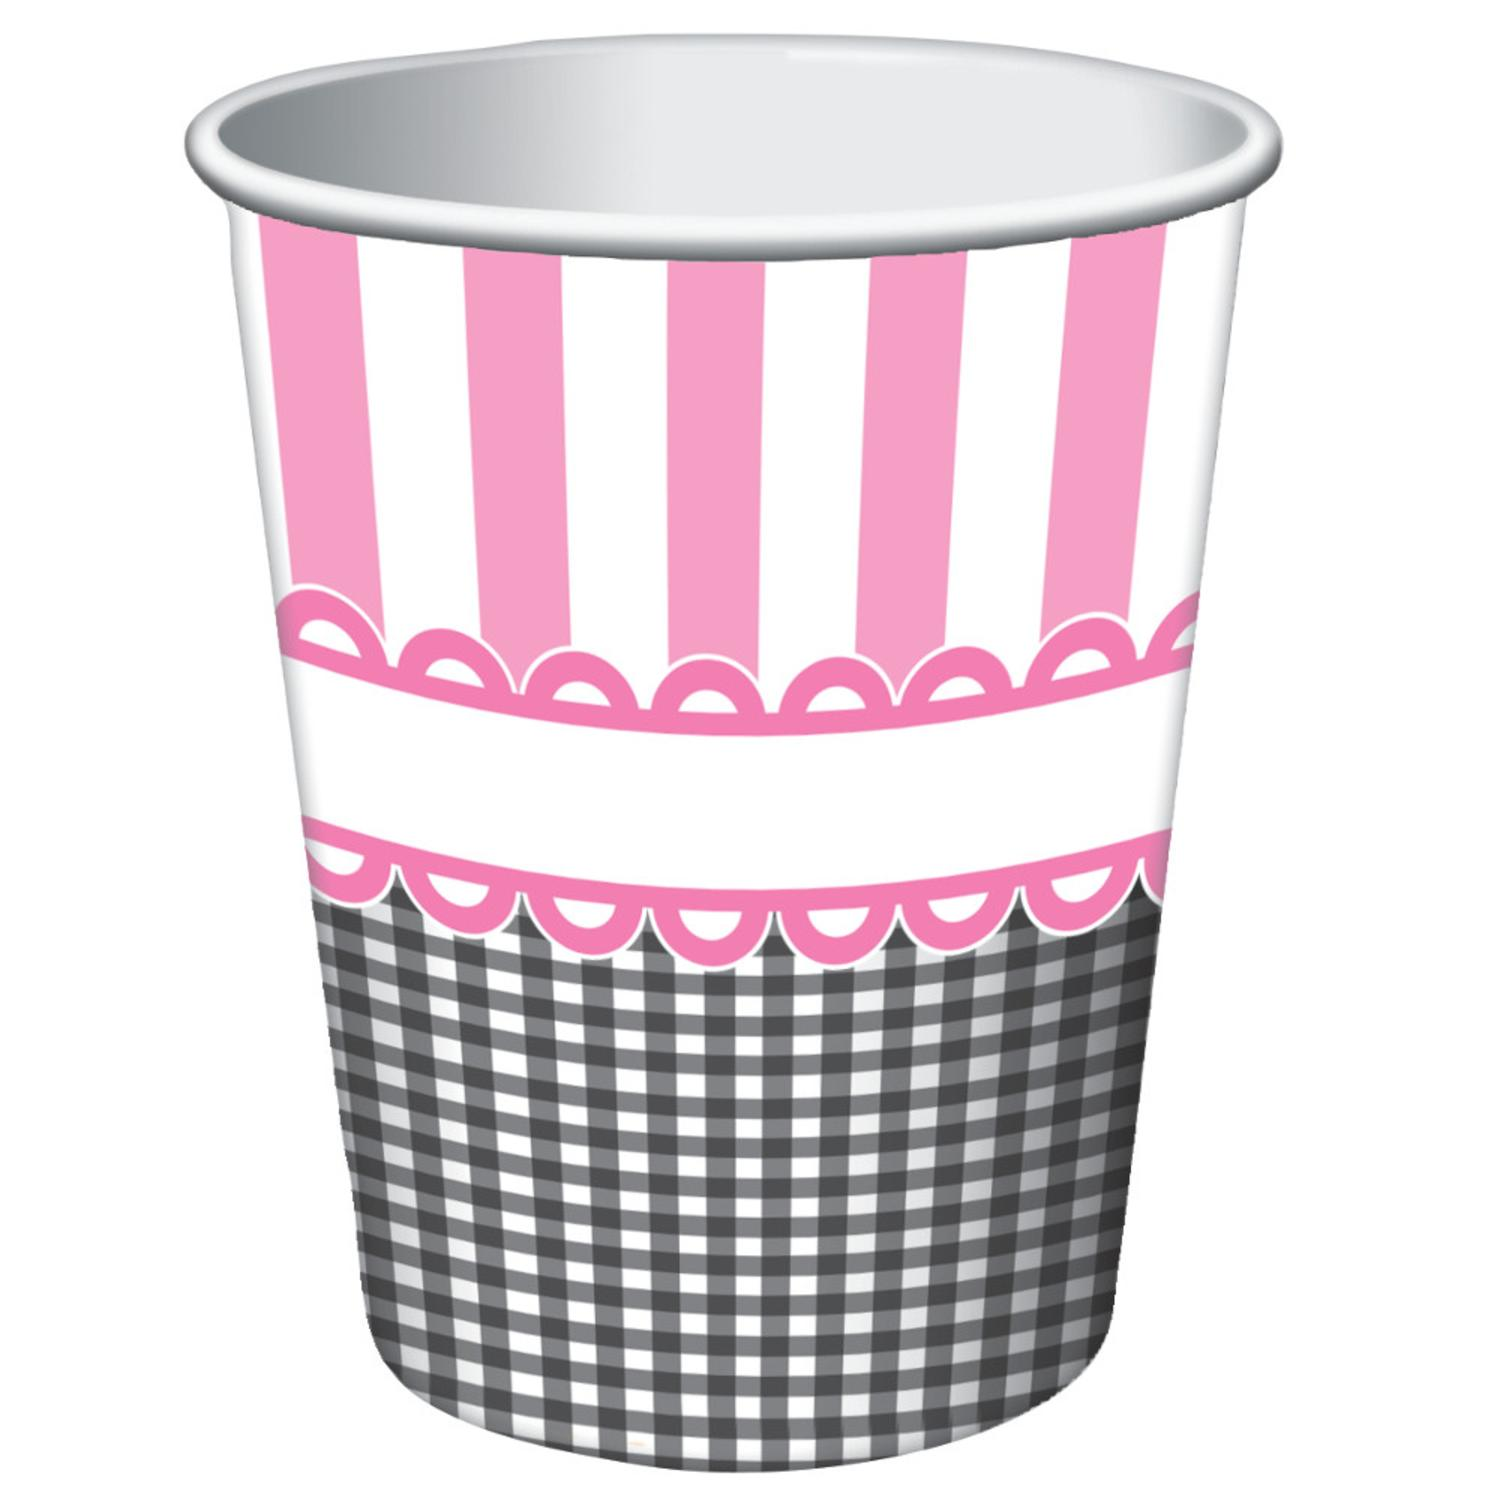 Club Pack of 96 Sweet Baby Feet- Pink Disposable Paper Hot and Cold Drinking Party Cups 9 oz.